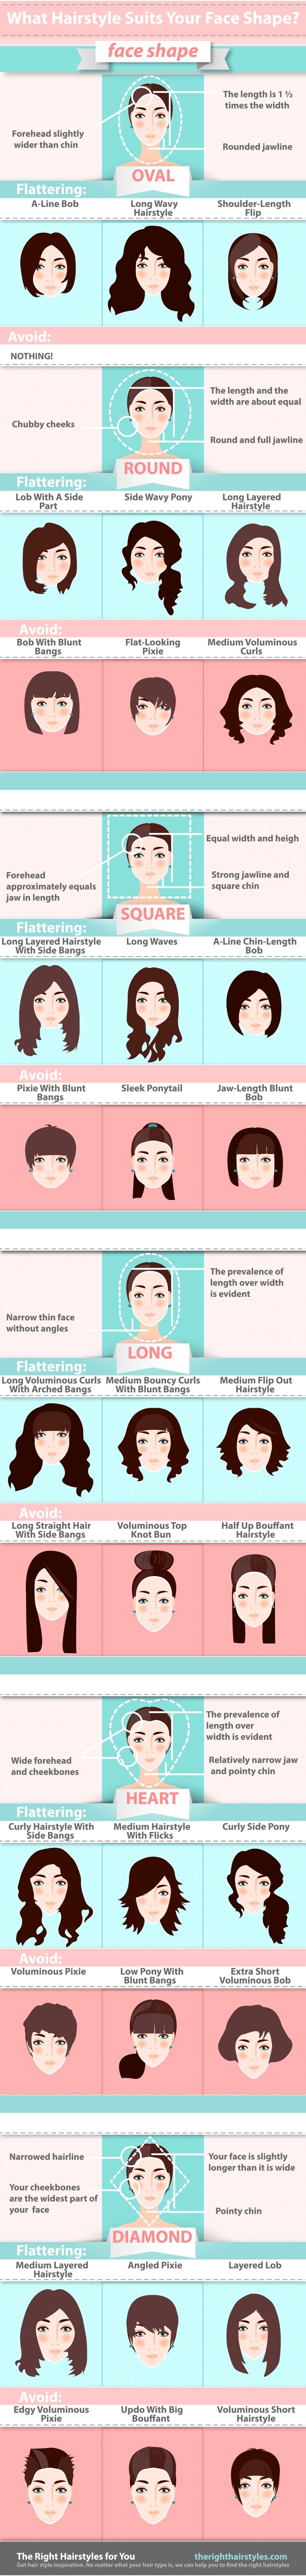 What Hairstyle Suits Your Face Shape?